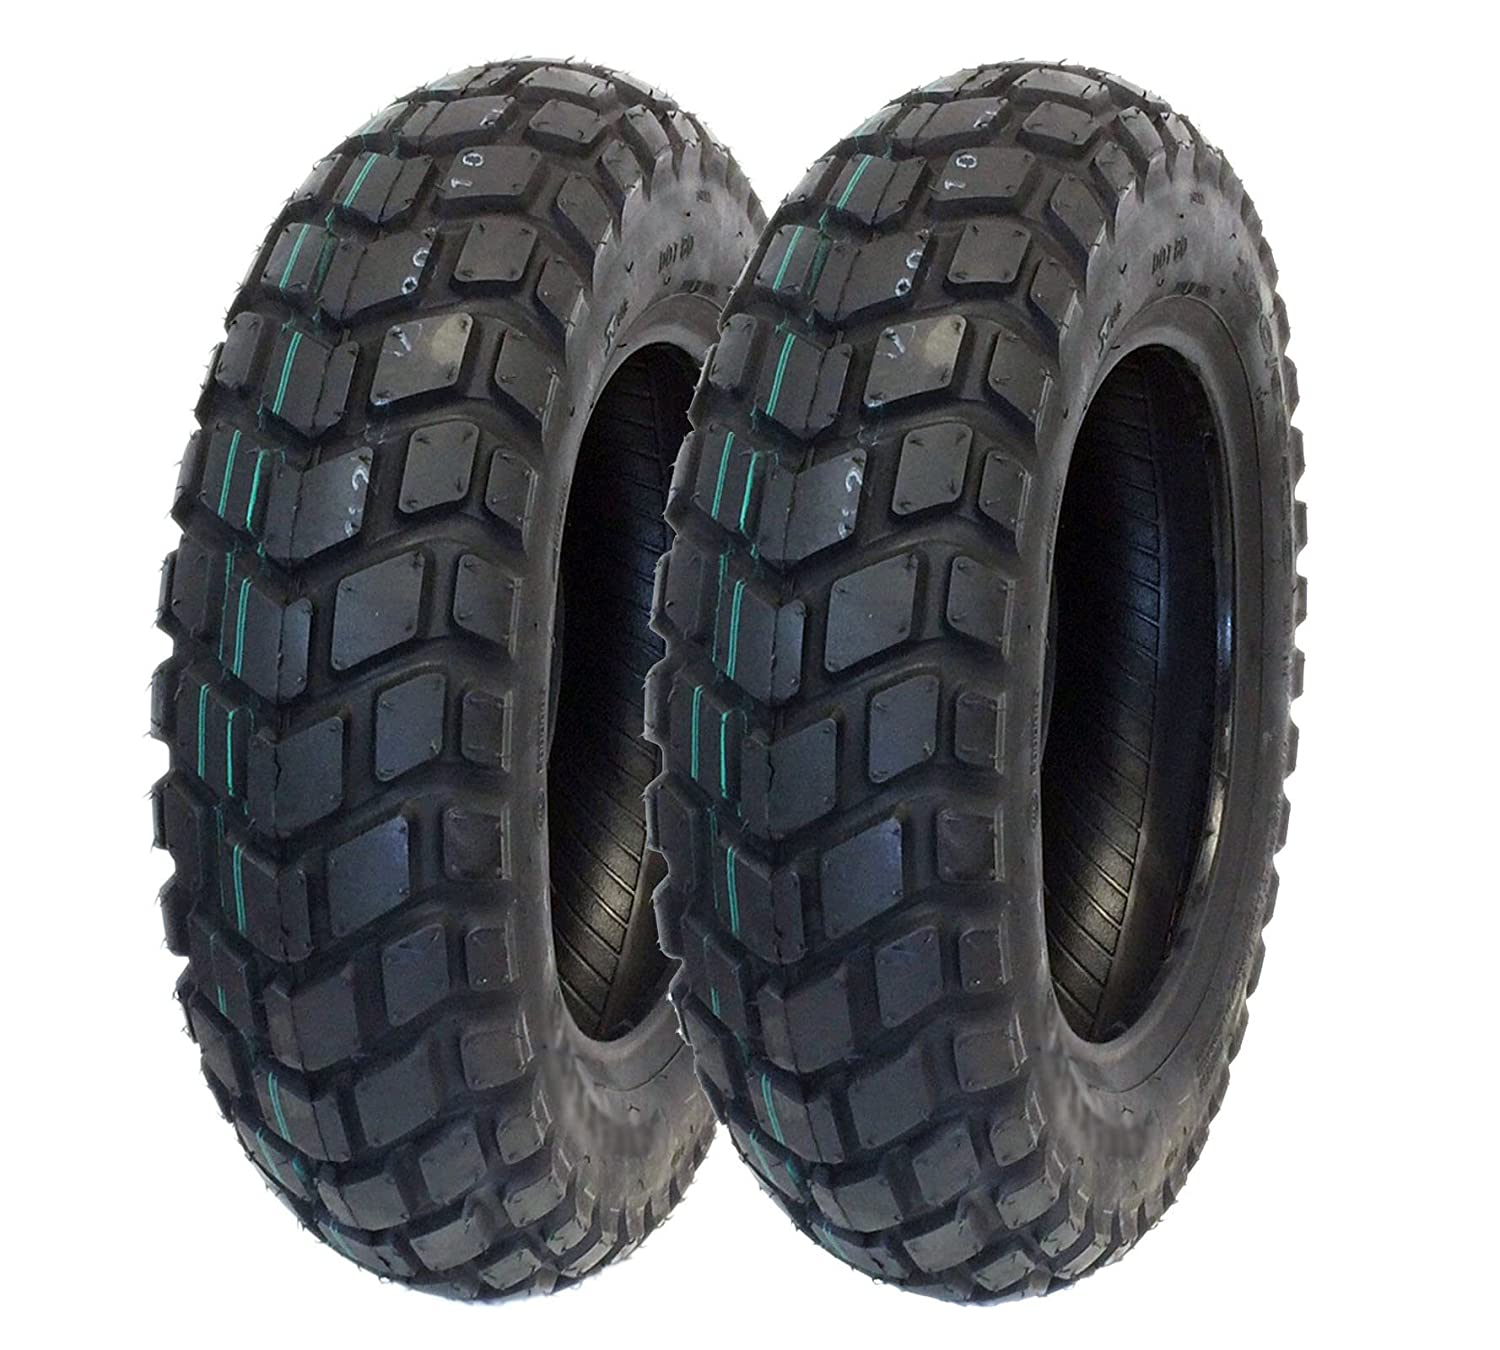 MMG Tire Set Front Tire 120/90-10 Rear Tire 130/90-10 fits on Honda Ruckus,  Kymco Cobra Cross Racer (P126)